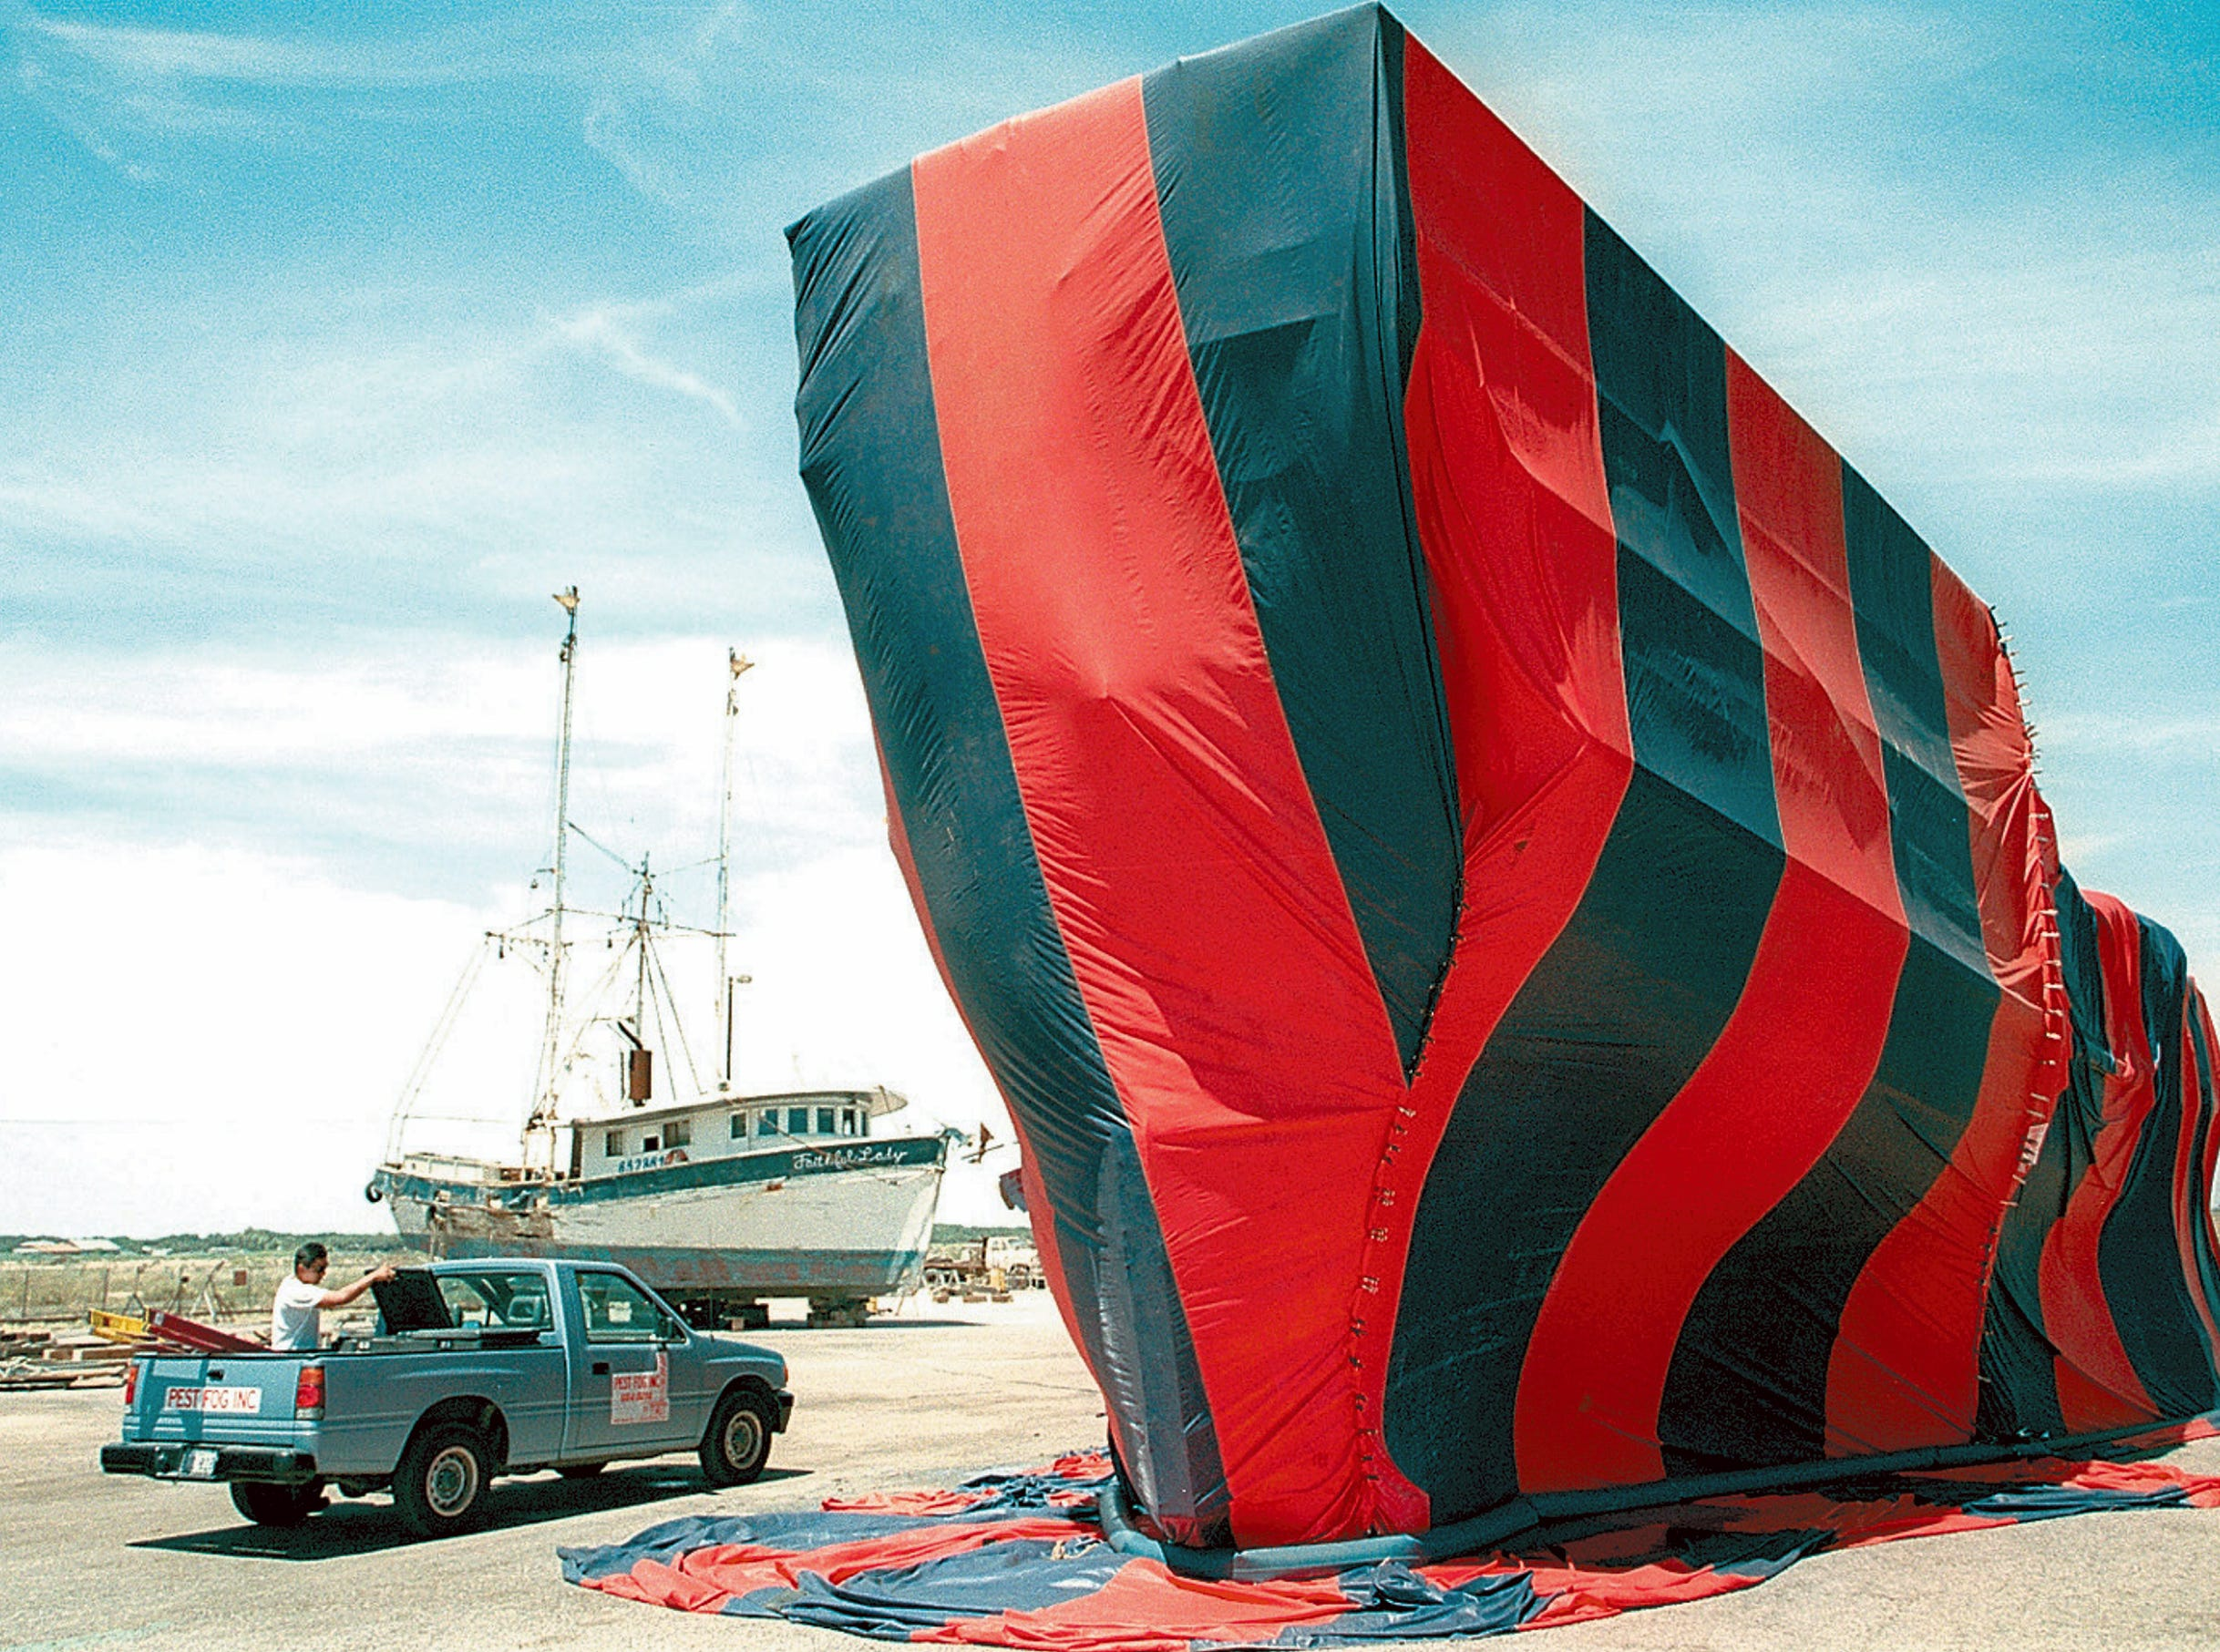 Andrew Trevino of Pest Fog Inc. watches guard over La Nina as it sits in the boatyard at Gulf Copper Ship Repair and Boatyard in Ingleside. The ship was tented and fumigated on Aug. 22, 1997.